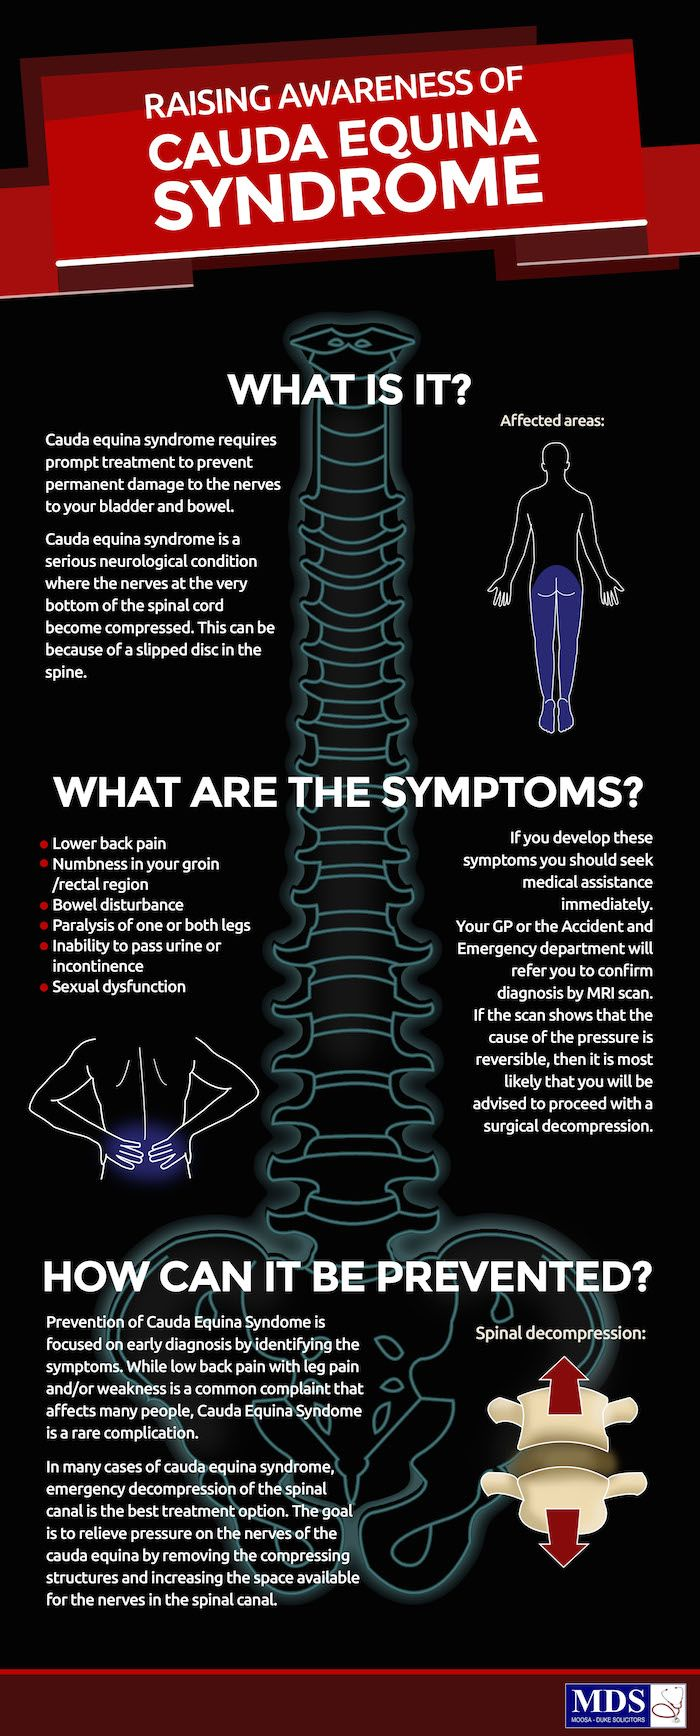 This infographic gives an overview of Cauda Equina Syndrome, what it is, and how it can be prevented through early diagnosis and treatment.